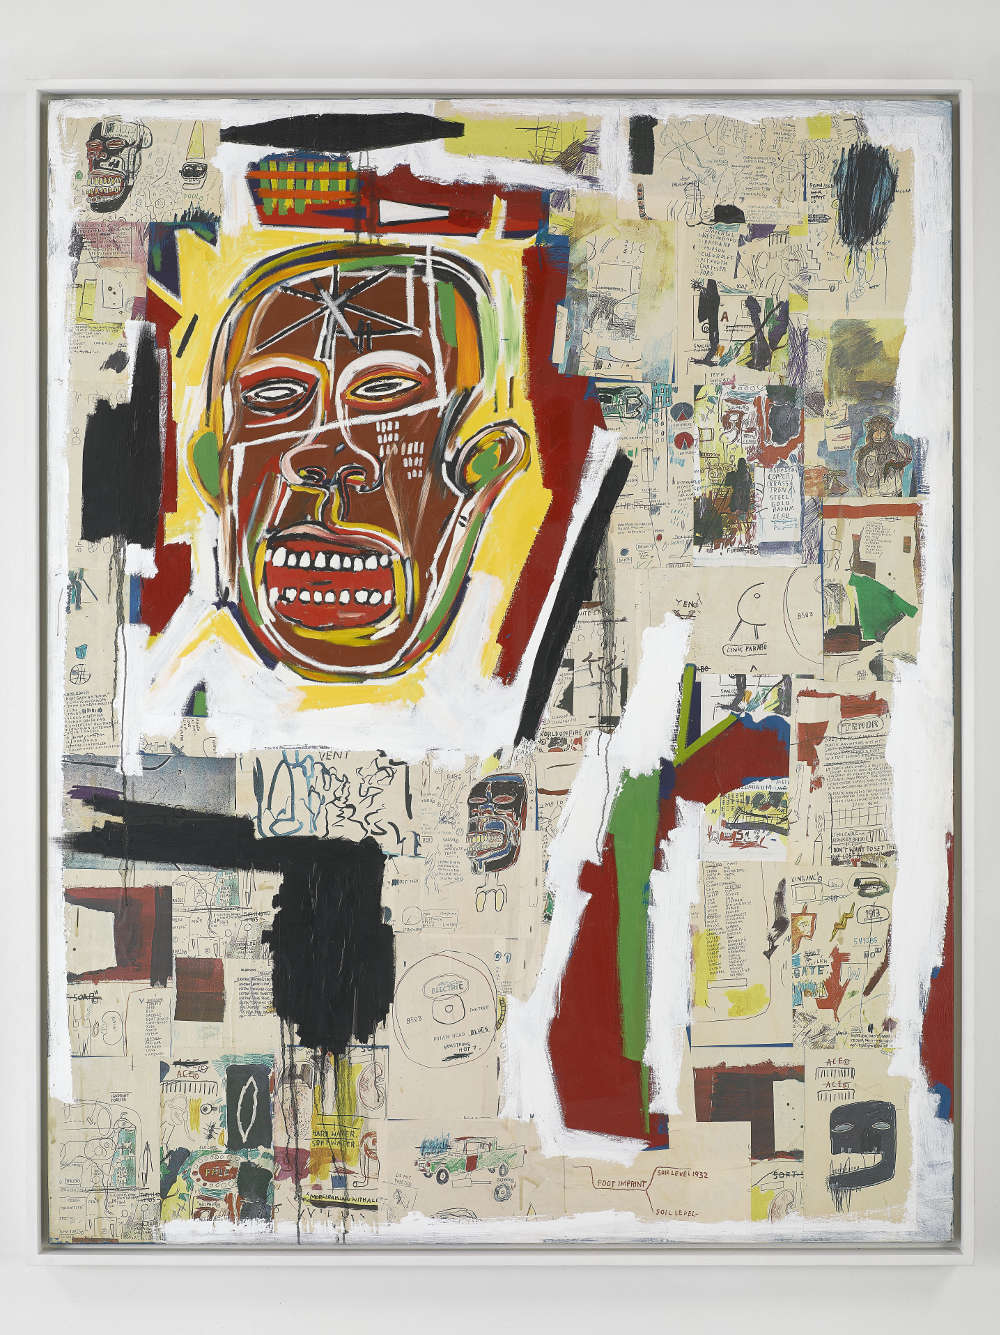 Jean-Michel Basquiat, King of the Zulus, 1984-85. Acrylic, oilstick, and Xerox collage on paper mounted on canvas 86x68 x1.5inches(218.5x173x4cm) MAC, Musée d'Art Contemporain, Marseille © Estate of Jean-Michel Basquiat. Licensed by Artestar, New York